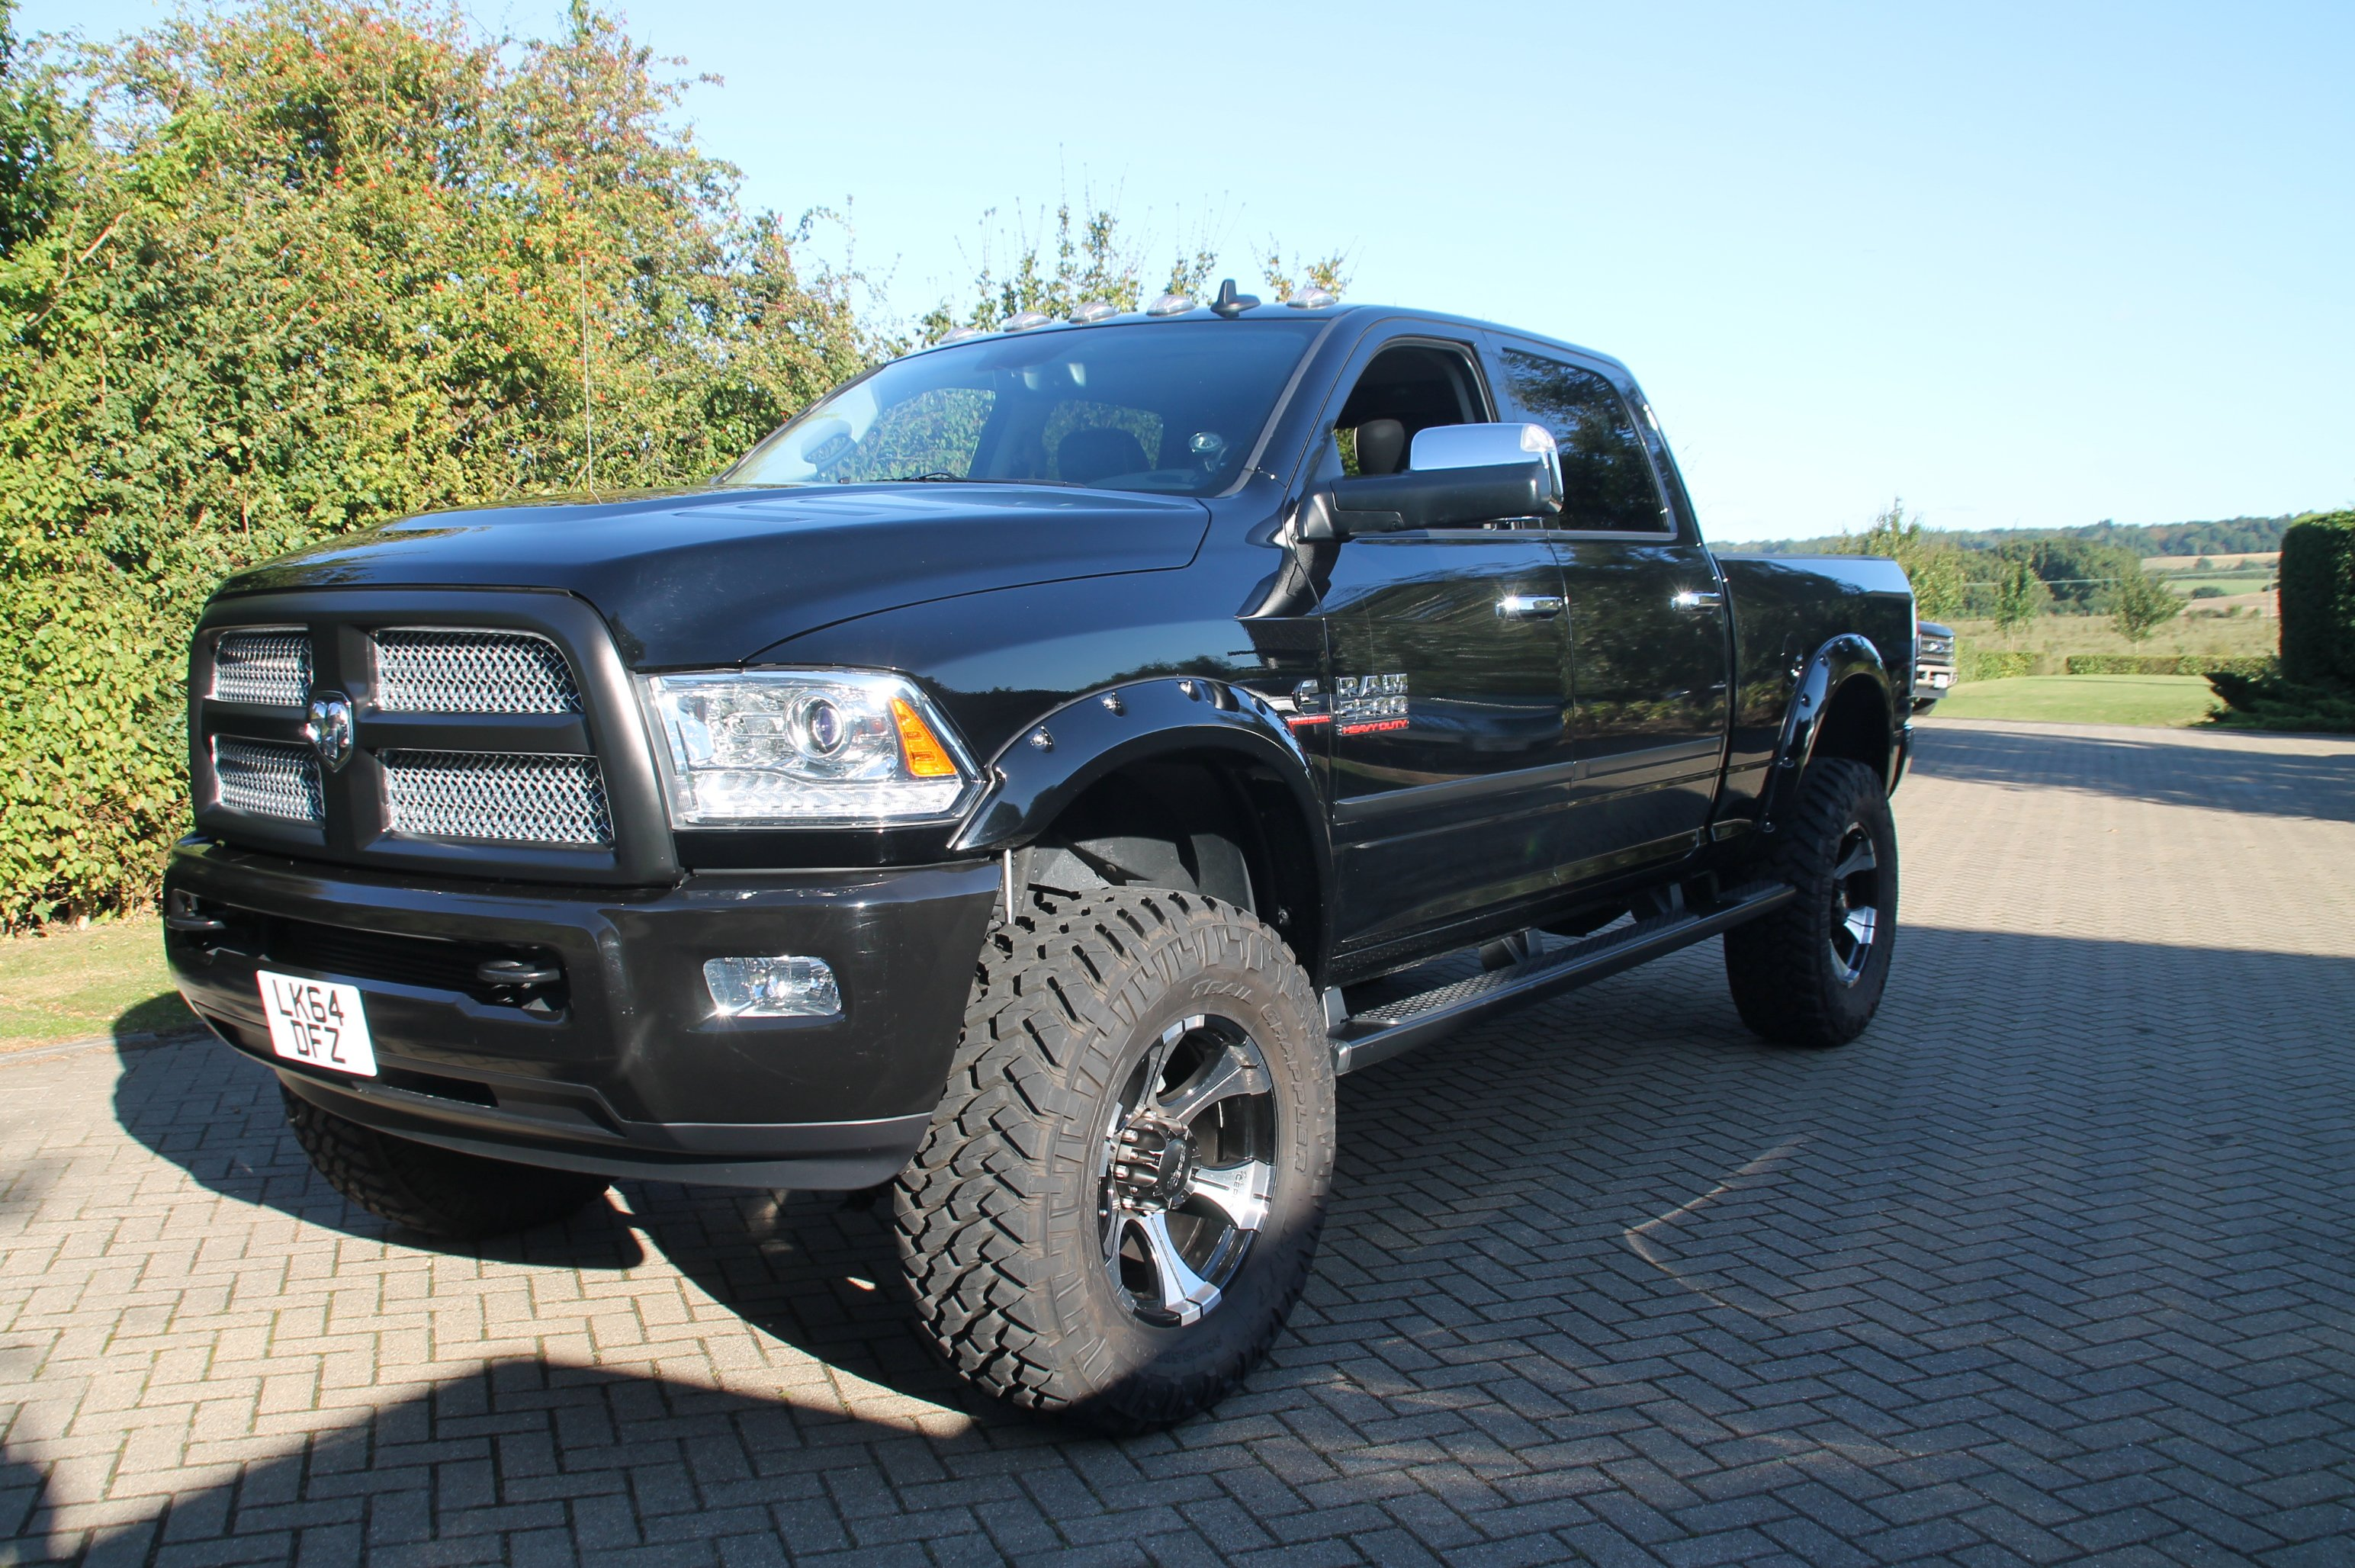 2014 dodge ram 2500 limited crew cab diesel monster truck - Crew cab dodge ram ...